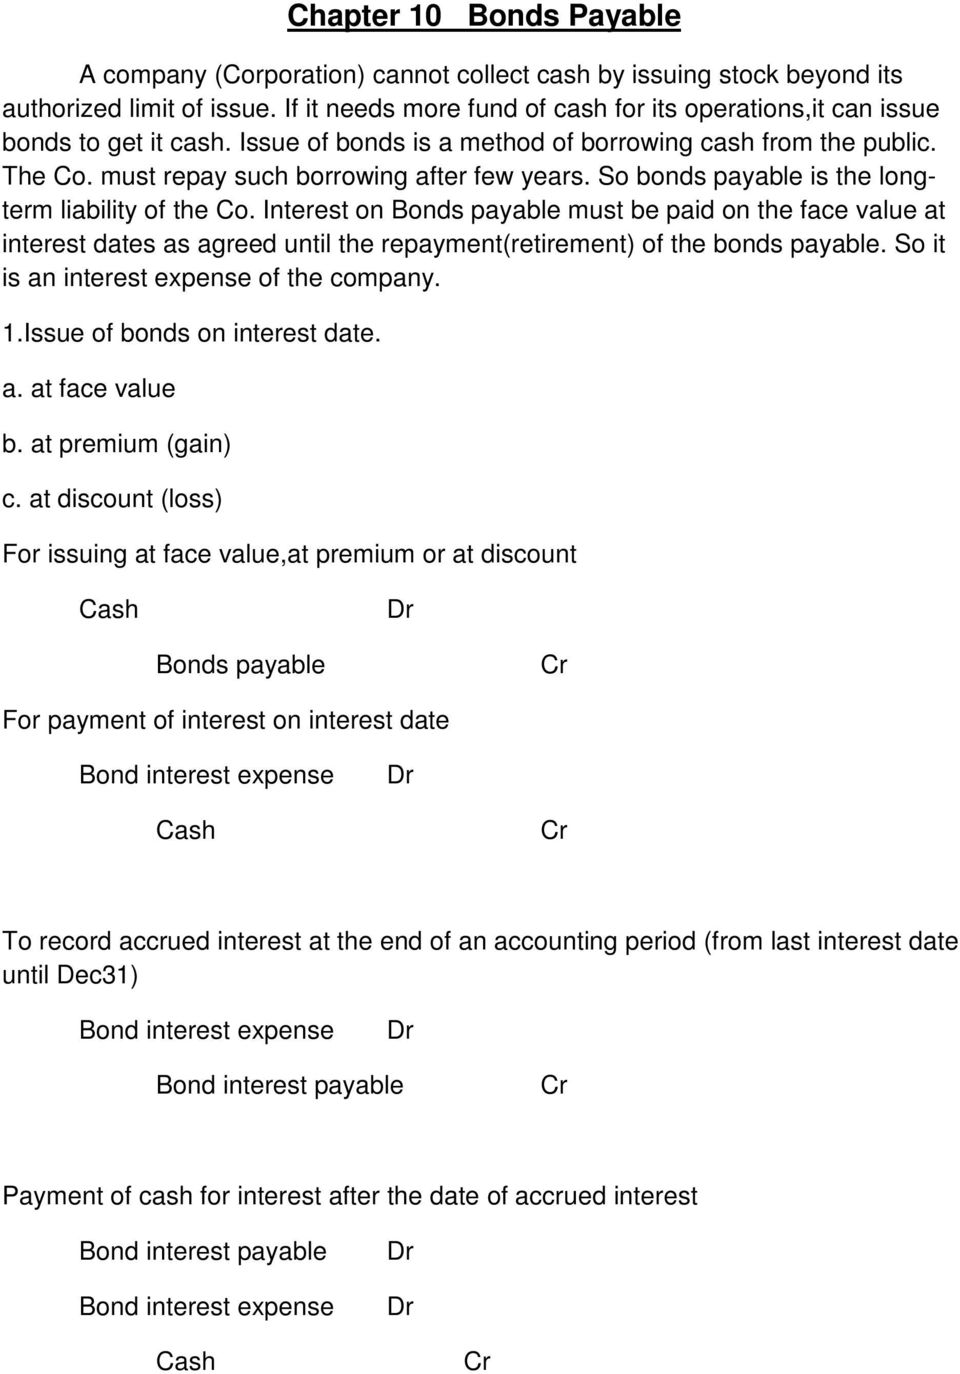 So bonds payable is the longterm liability of the Co. Interest on Bonds payable must be paid on the face value at interest dates as agreed until the repayment(retirement) of the bonds payable.